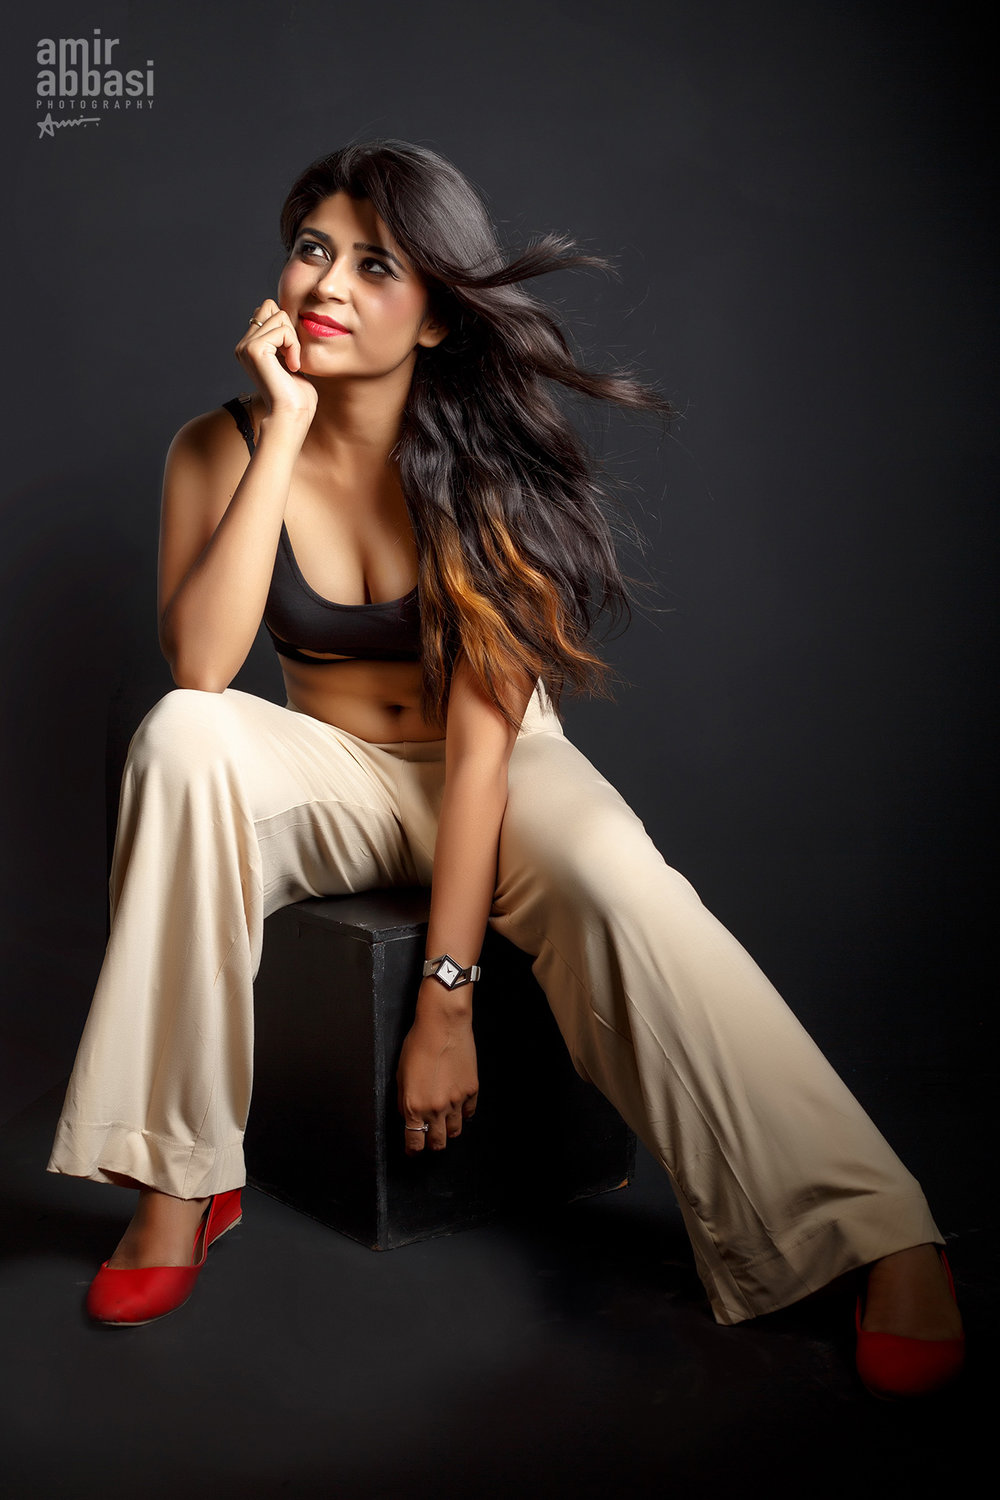 Model Priyanka Shukla's first professional Portfolio, Shot by Fashion Photographer Amir Abbasi